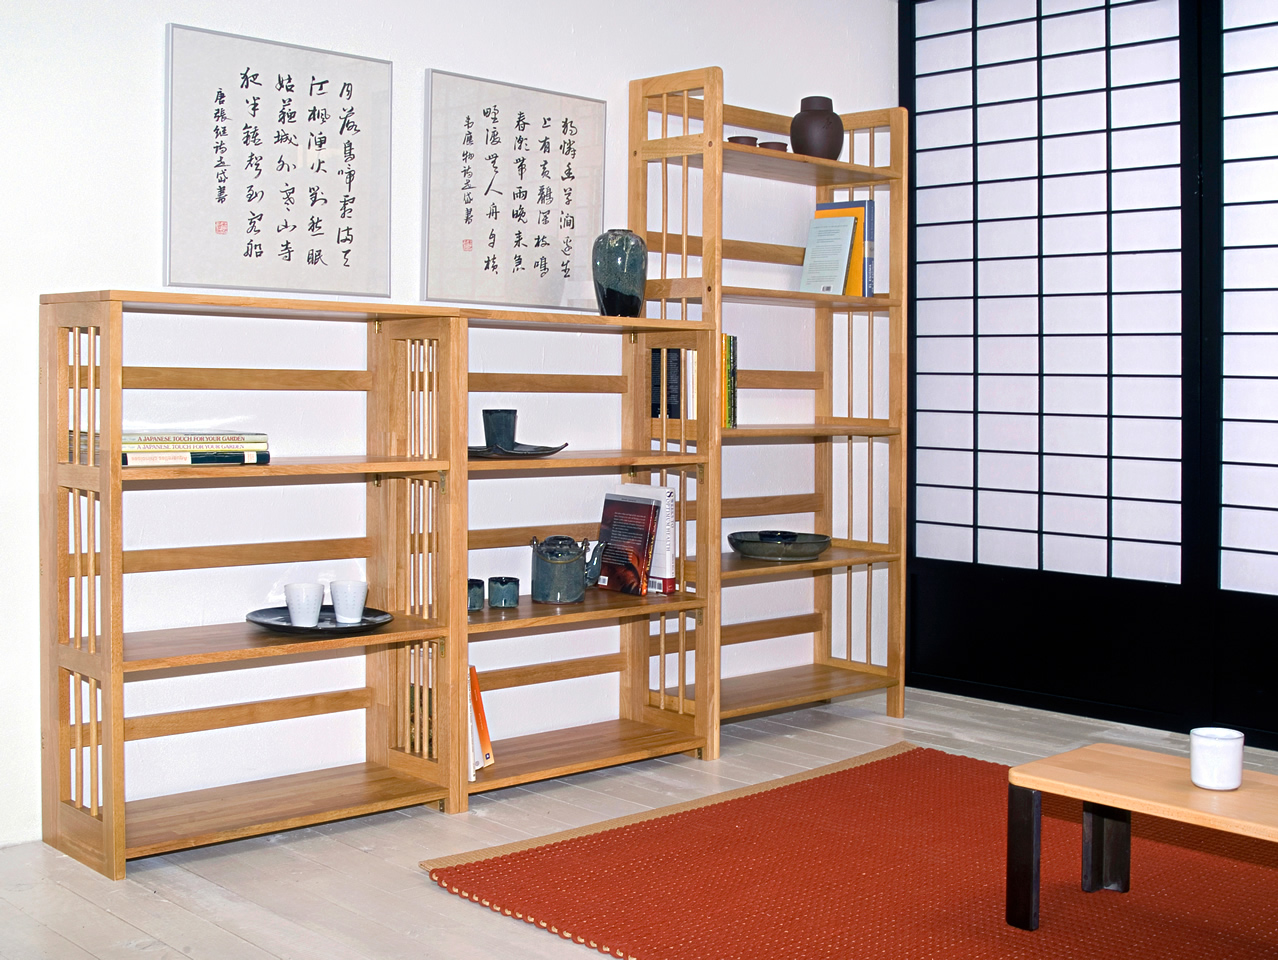 Estanter a apilable no apilable haiku futon - Estanterias de madera a medida ...